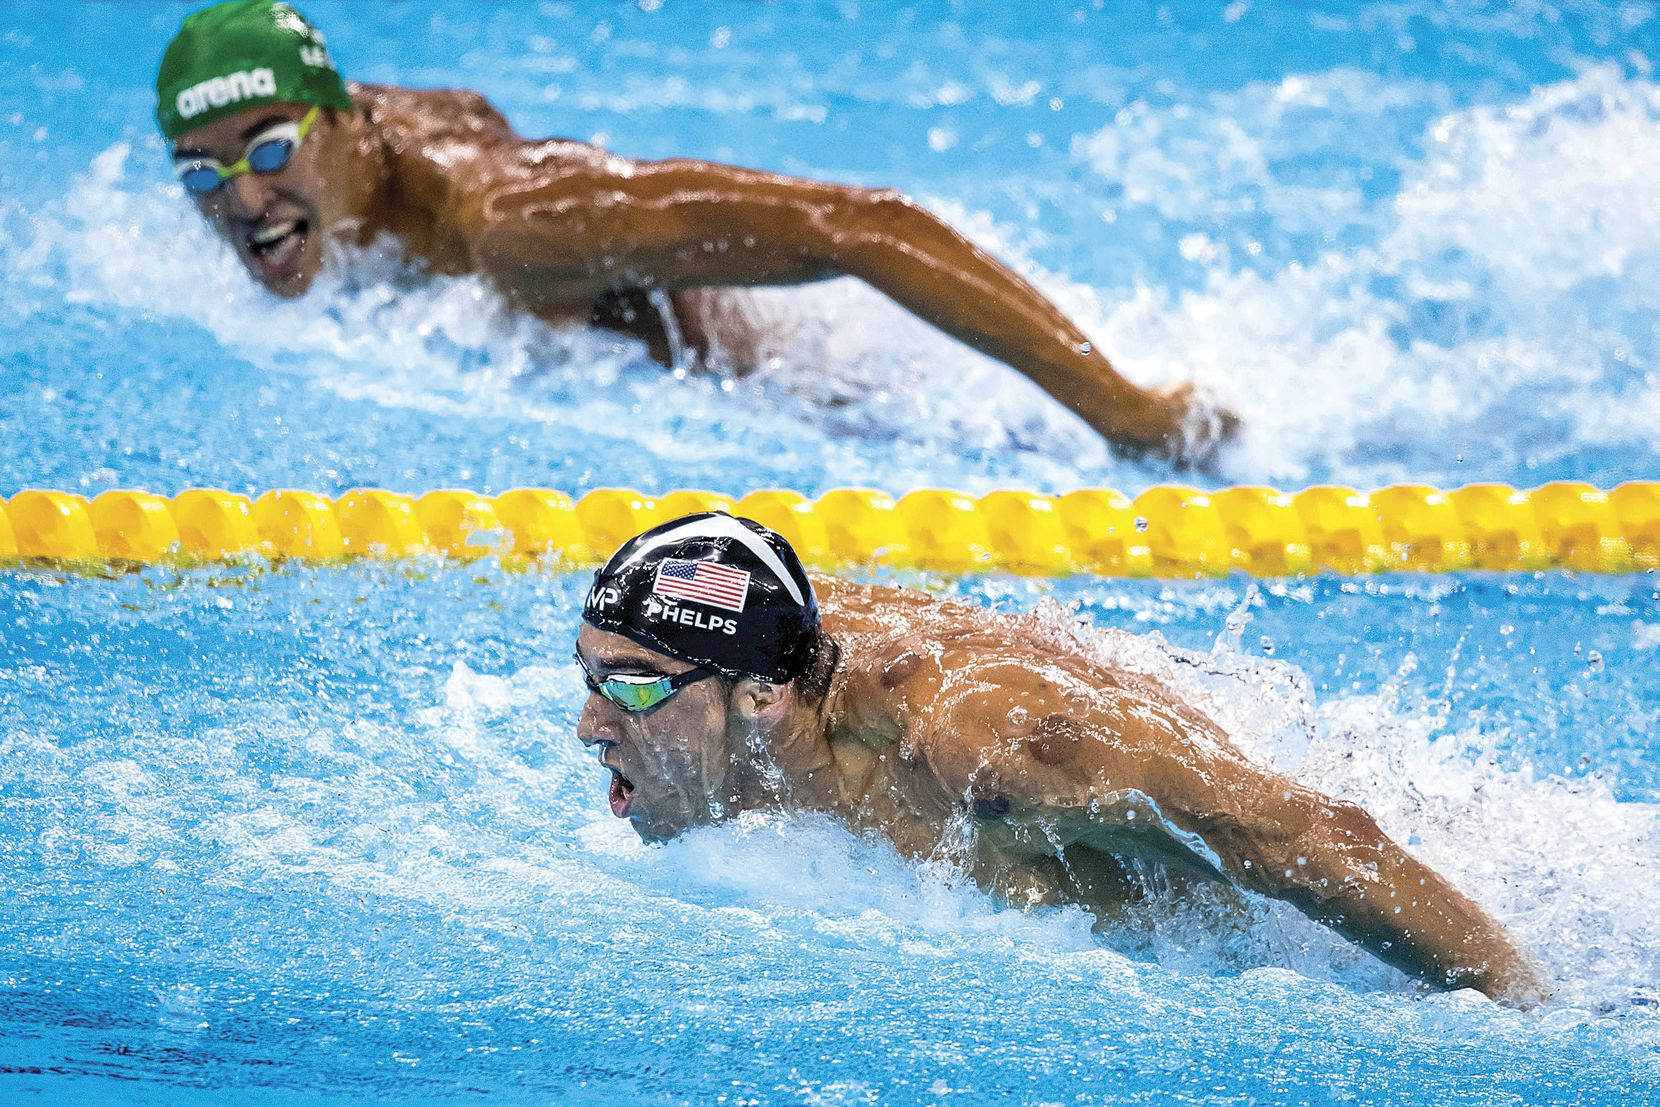 Michael Phelps led Chad Guy Bertrand Le Clos of South Africa as the American closed in on the gold medal in the men's 200-meter butterfly final at the Rio Games on Aug. 9. It was Phelps'€™ 20th gold medal, and by the time the Games were over, he would claim three more.